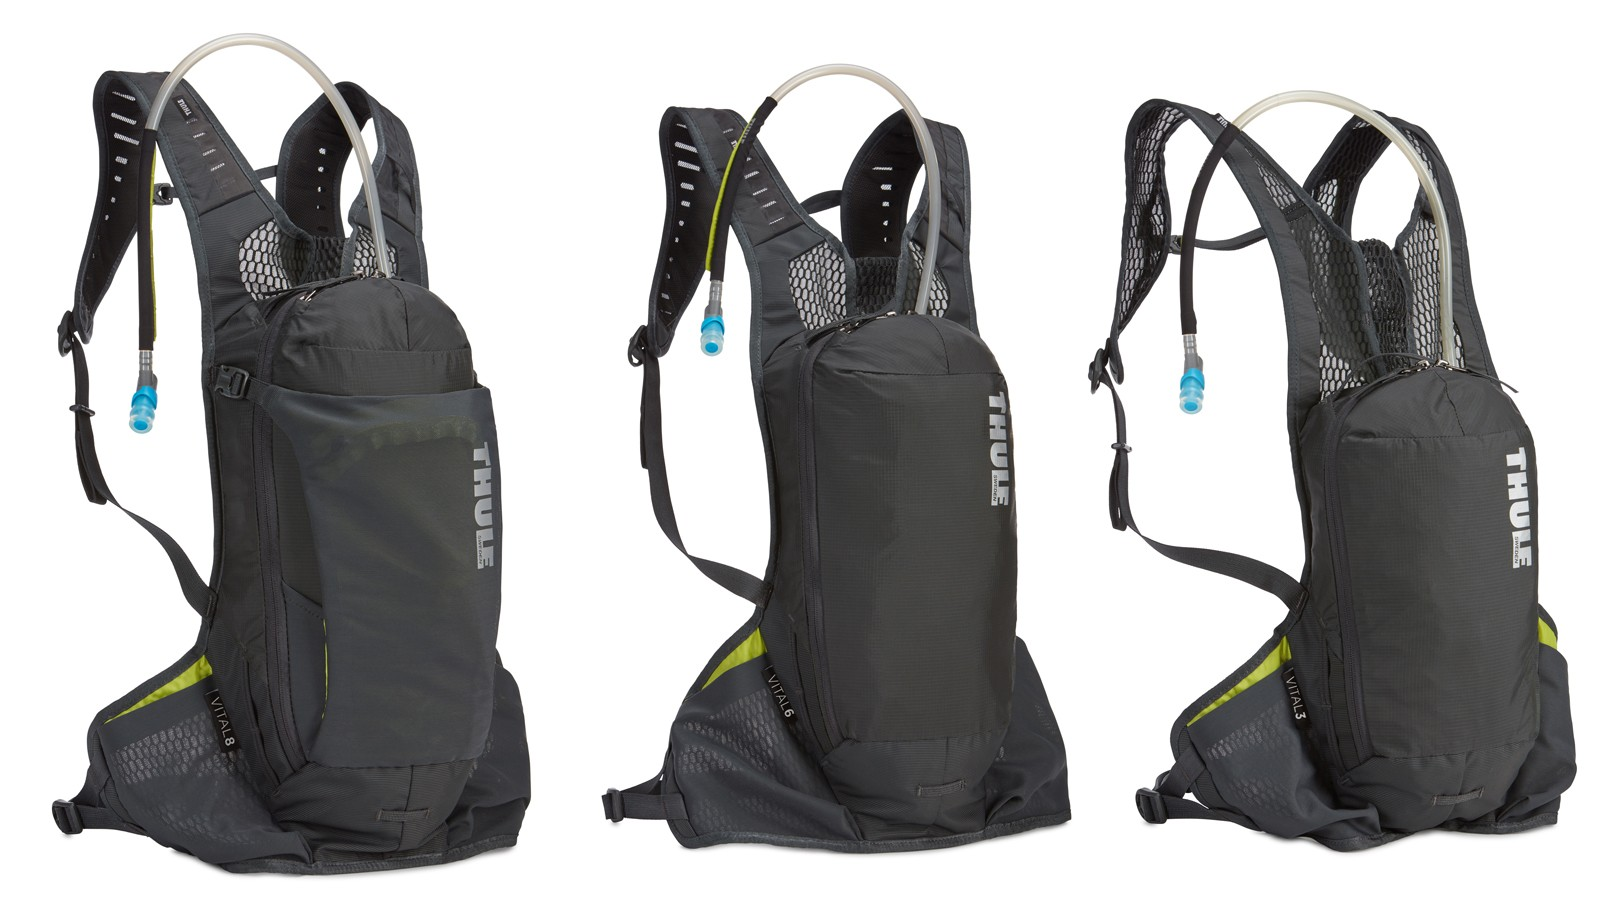 Three options of the Vital backpack will be available. From left: 8, 6, and 3 litre